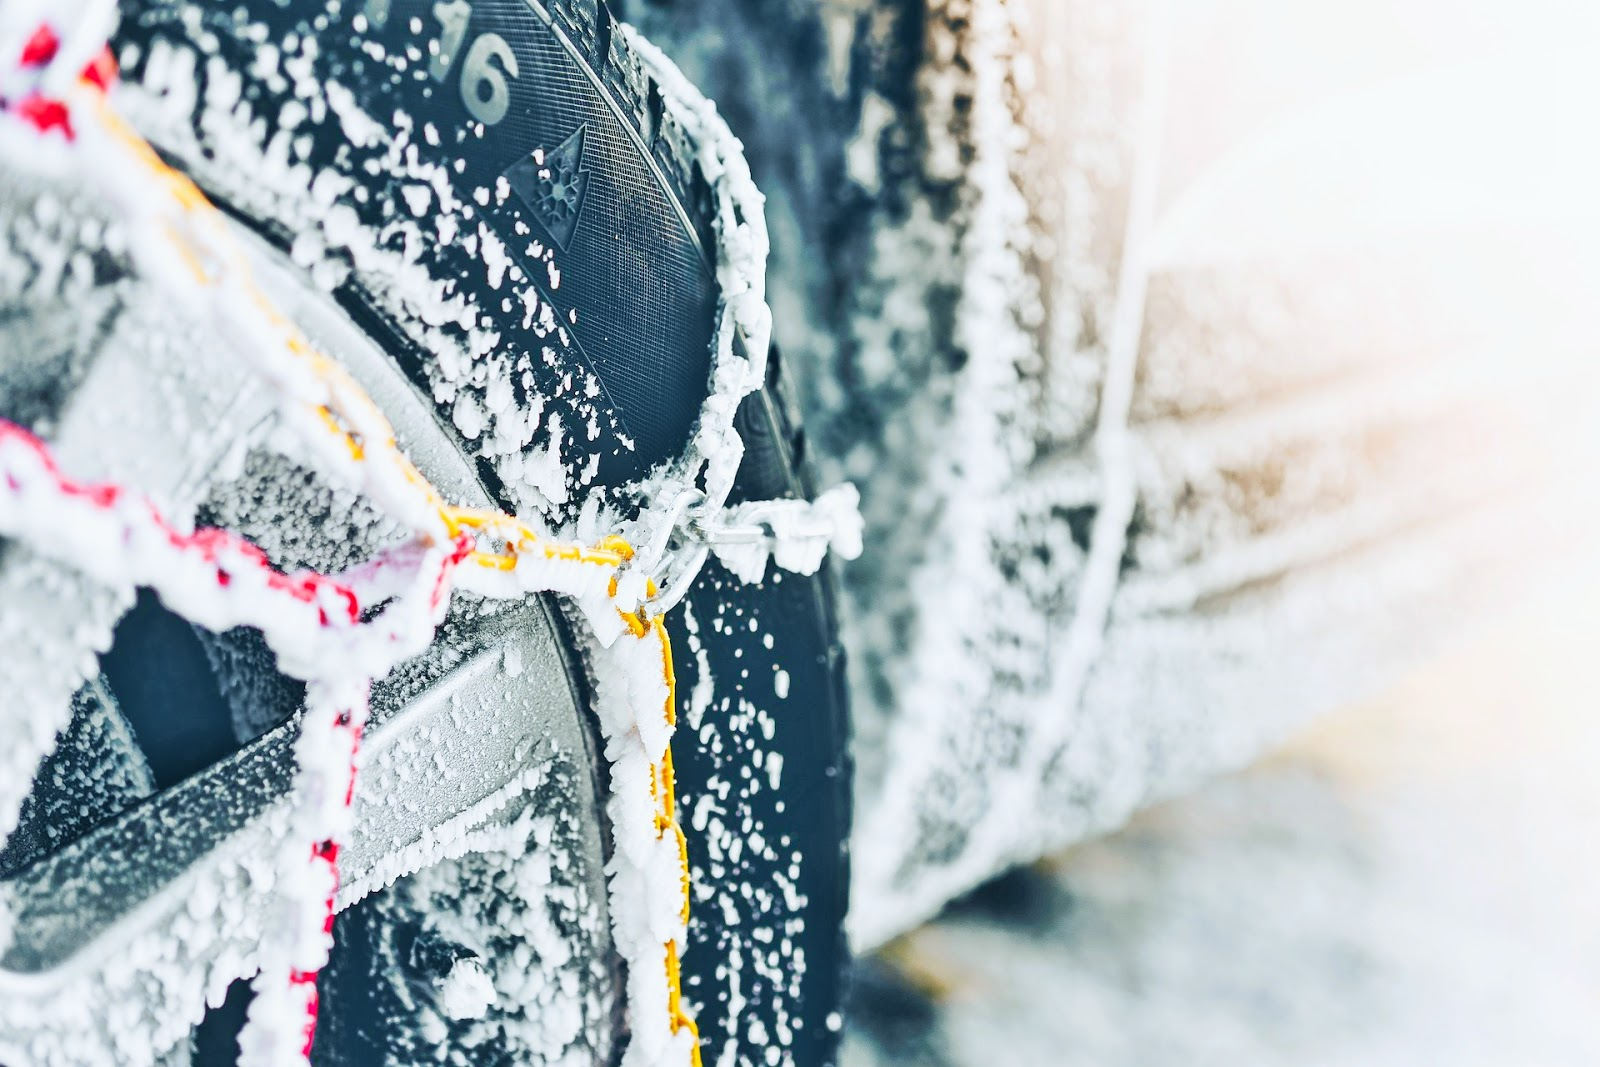 Do snow chains work in the mud?